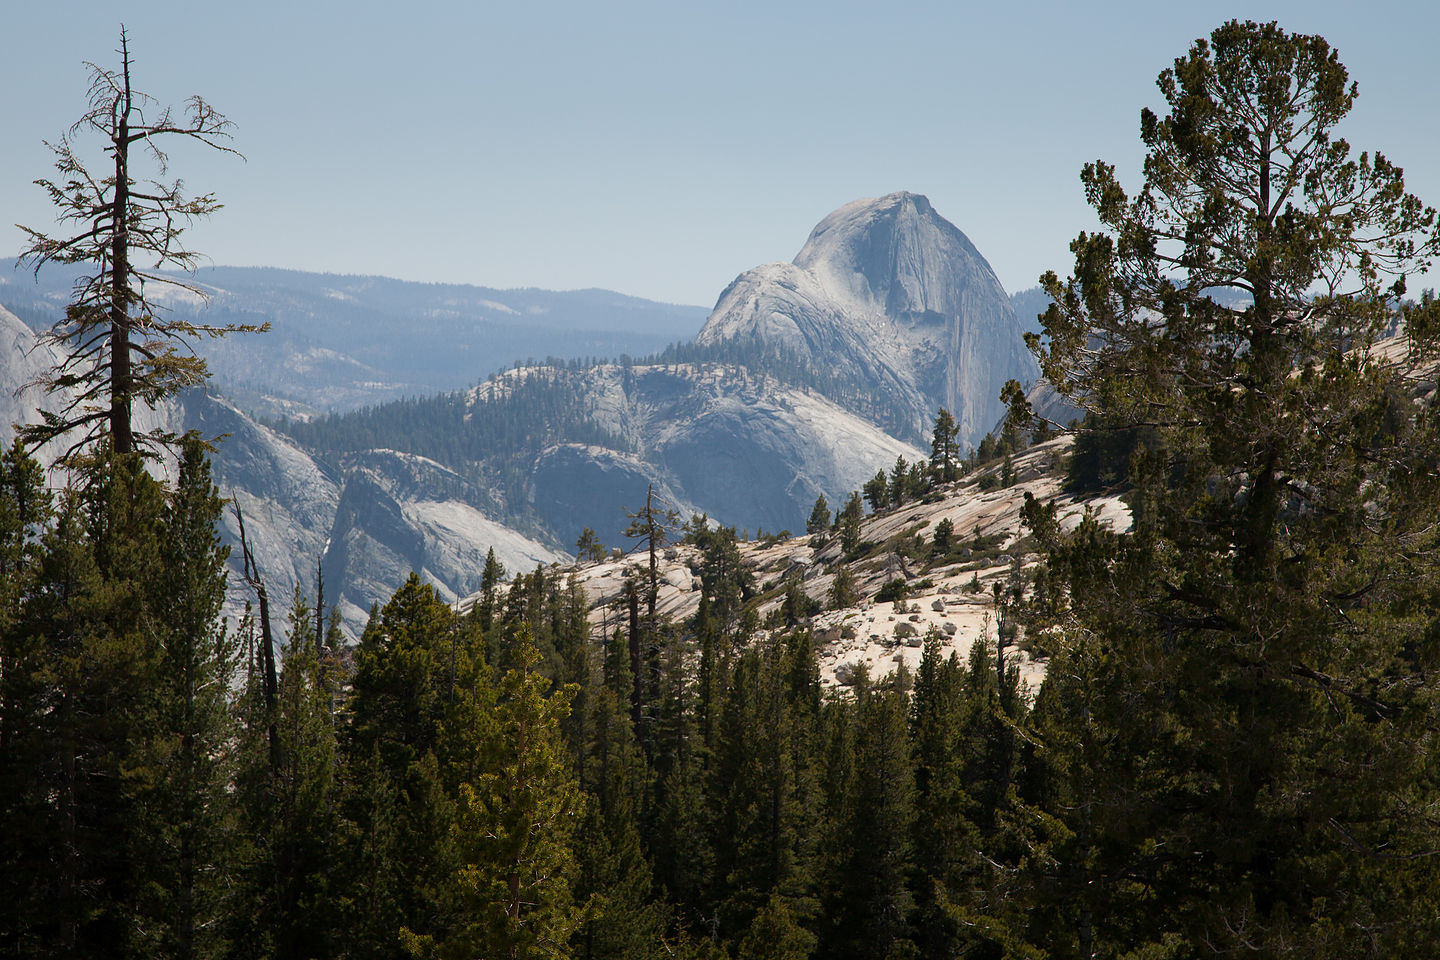 Back of Half Dome from Tioga Pass Road